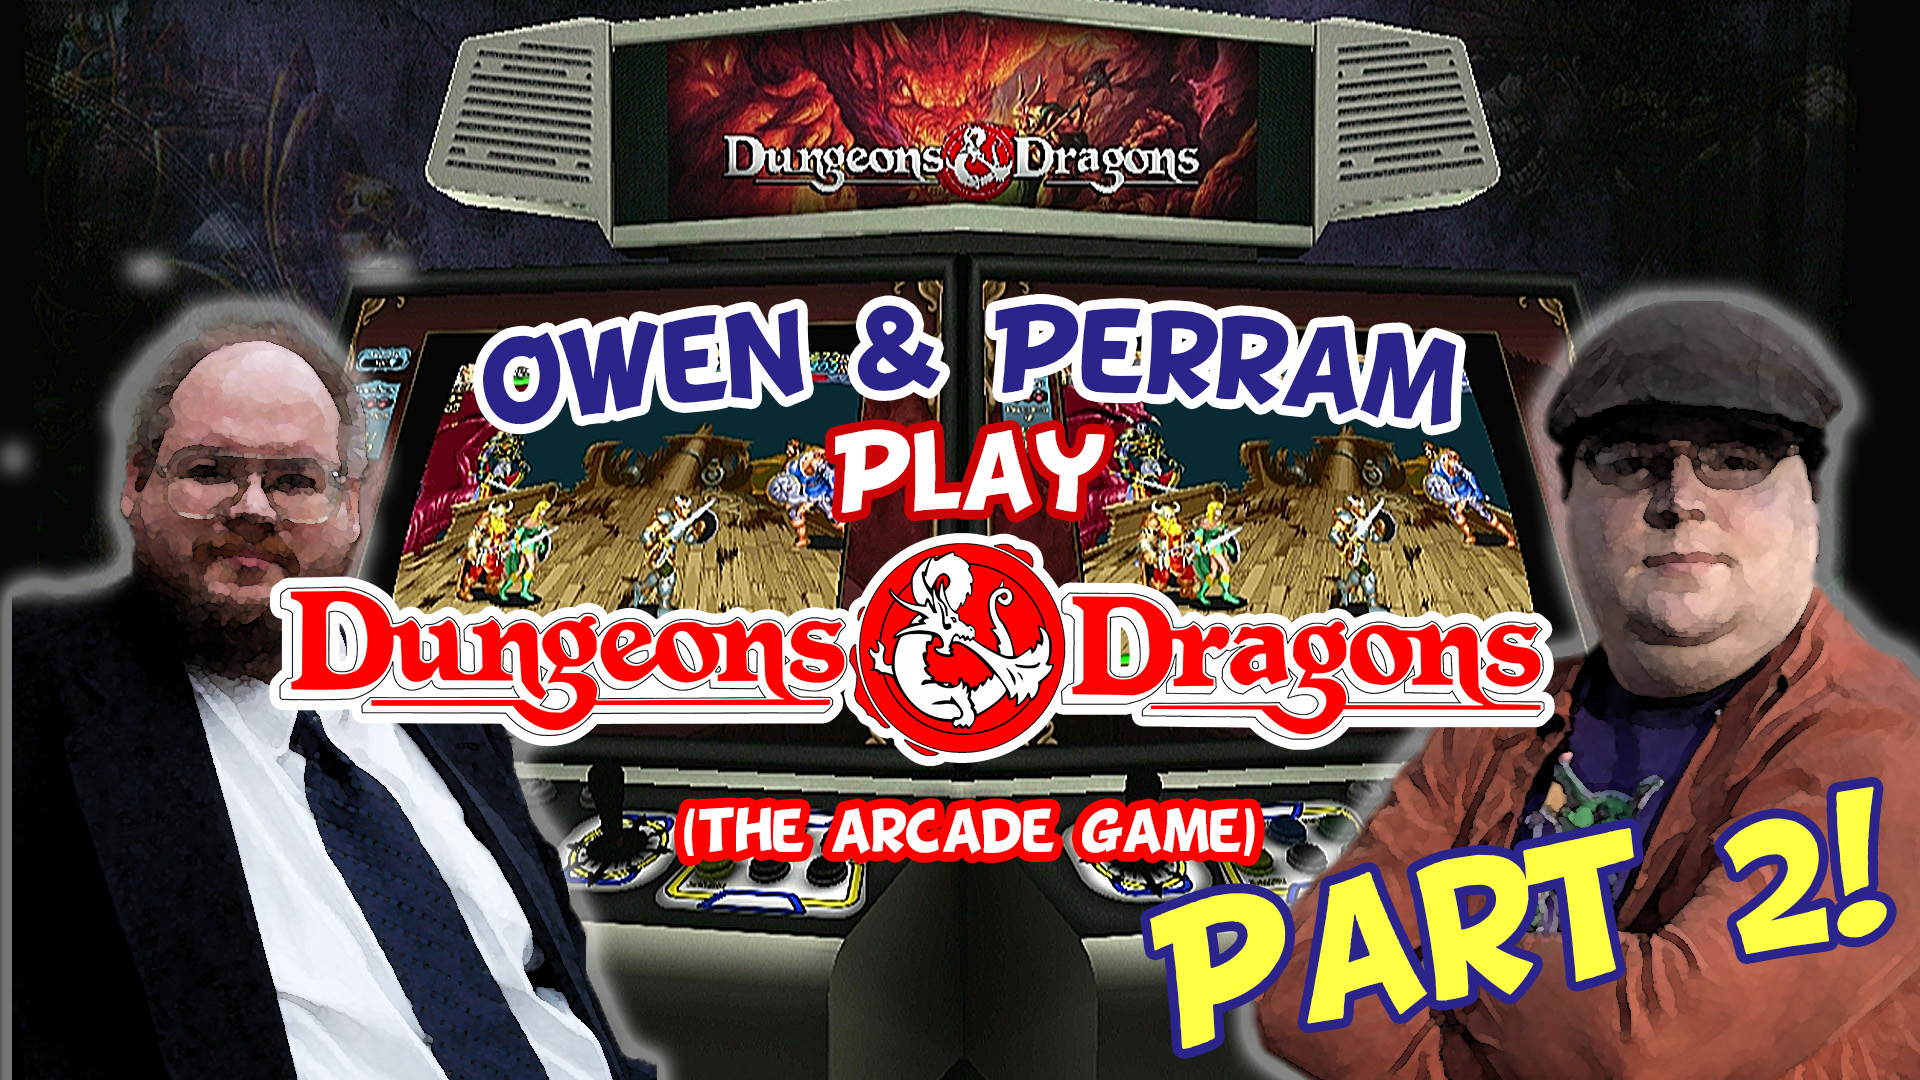 Owen & Perram Play Dungeons & Dragons (The Arcade Game) Part 2!